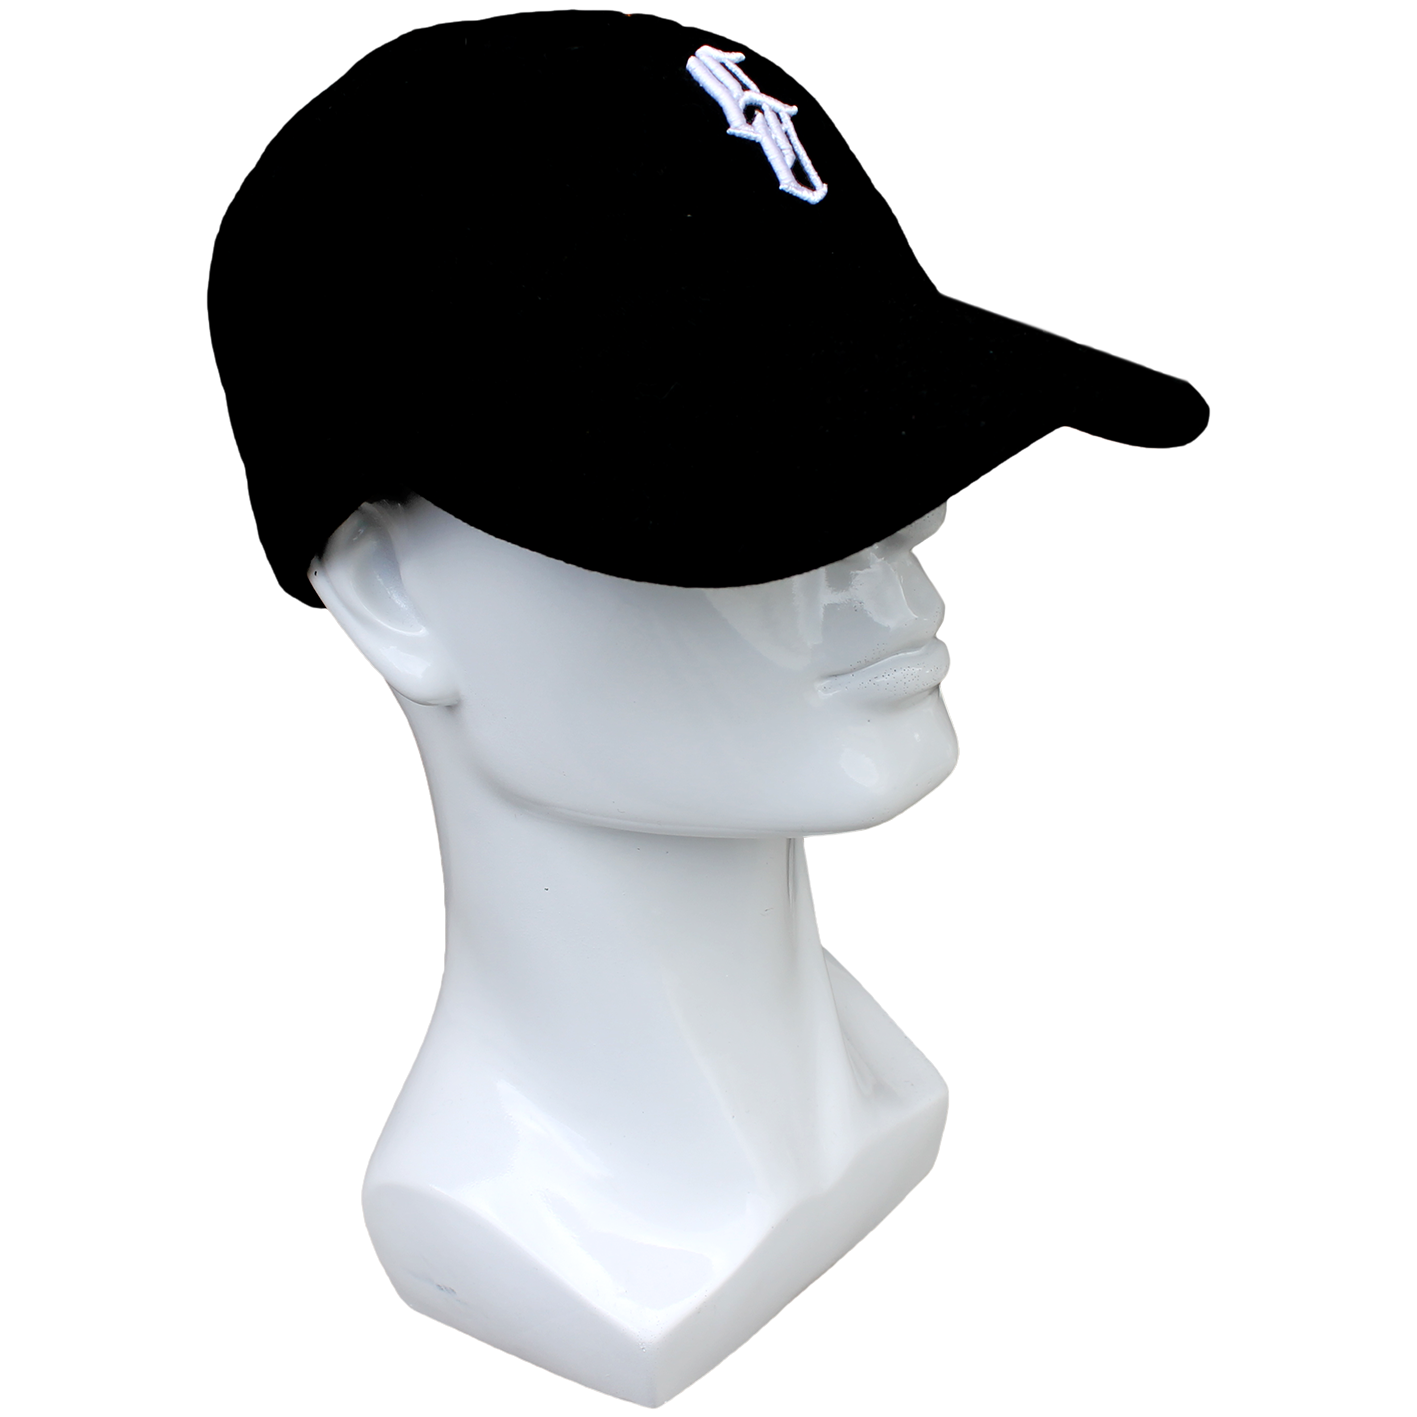 Plain black dad hat with white logo